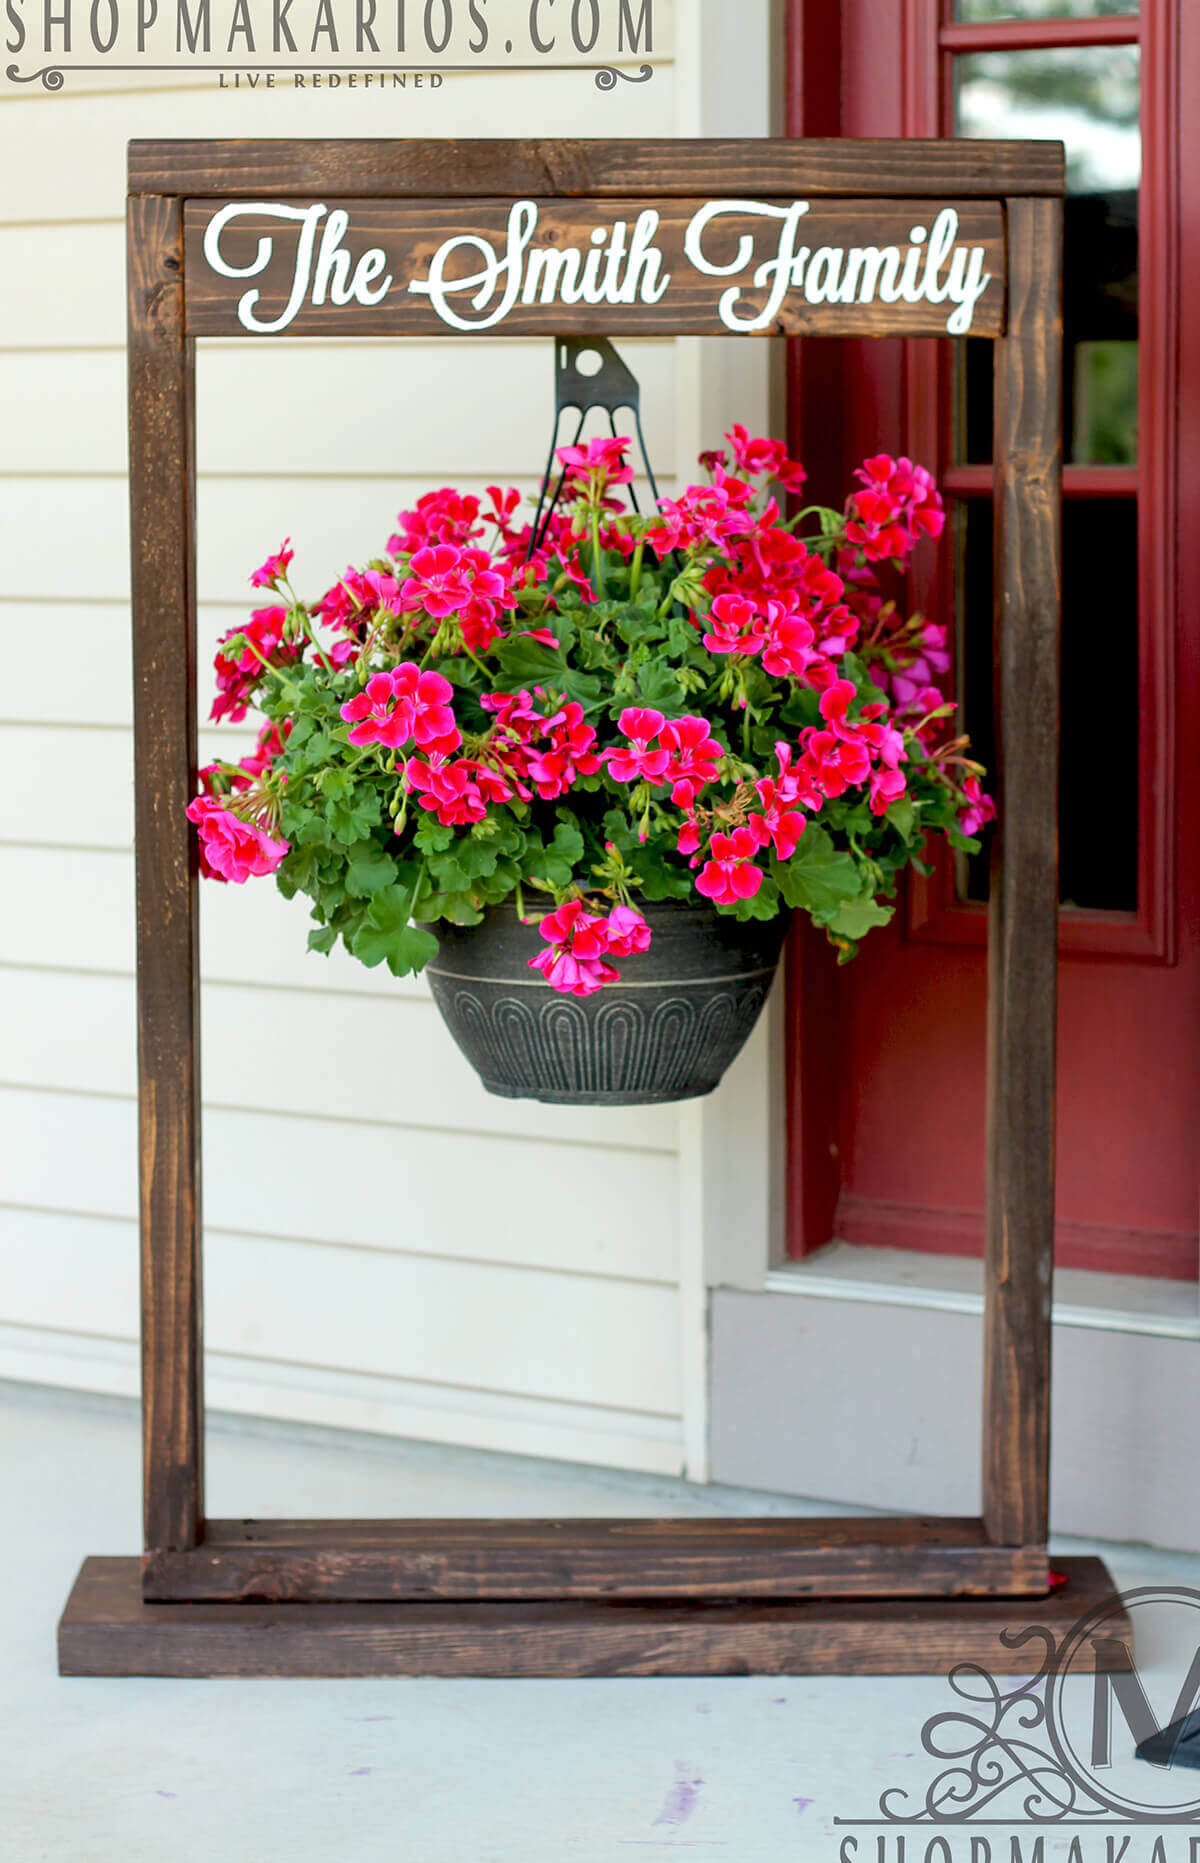 45 Best Outdoor Hanging Planter Ideas and Designs for 2020 on Hanging Plant Stand Ideas  id=11967